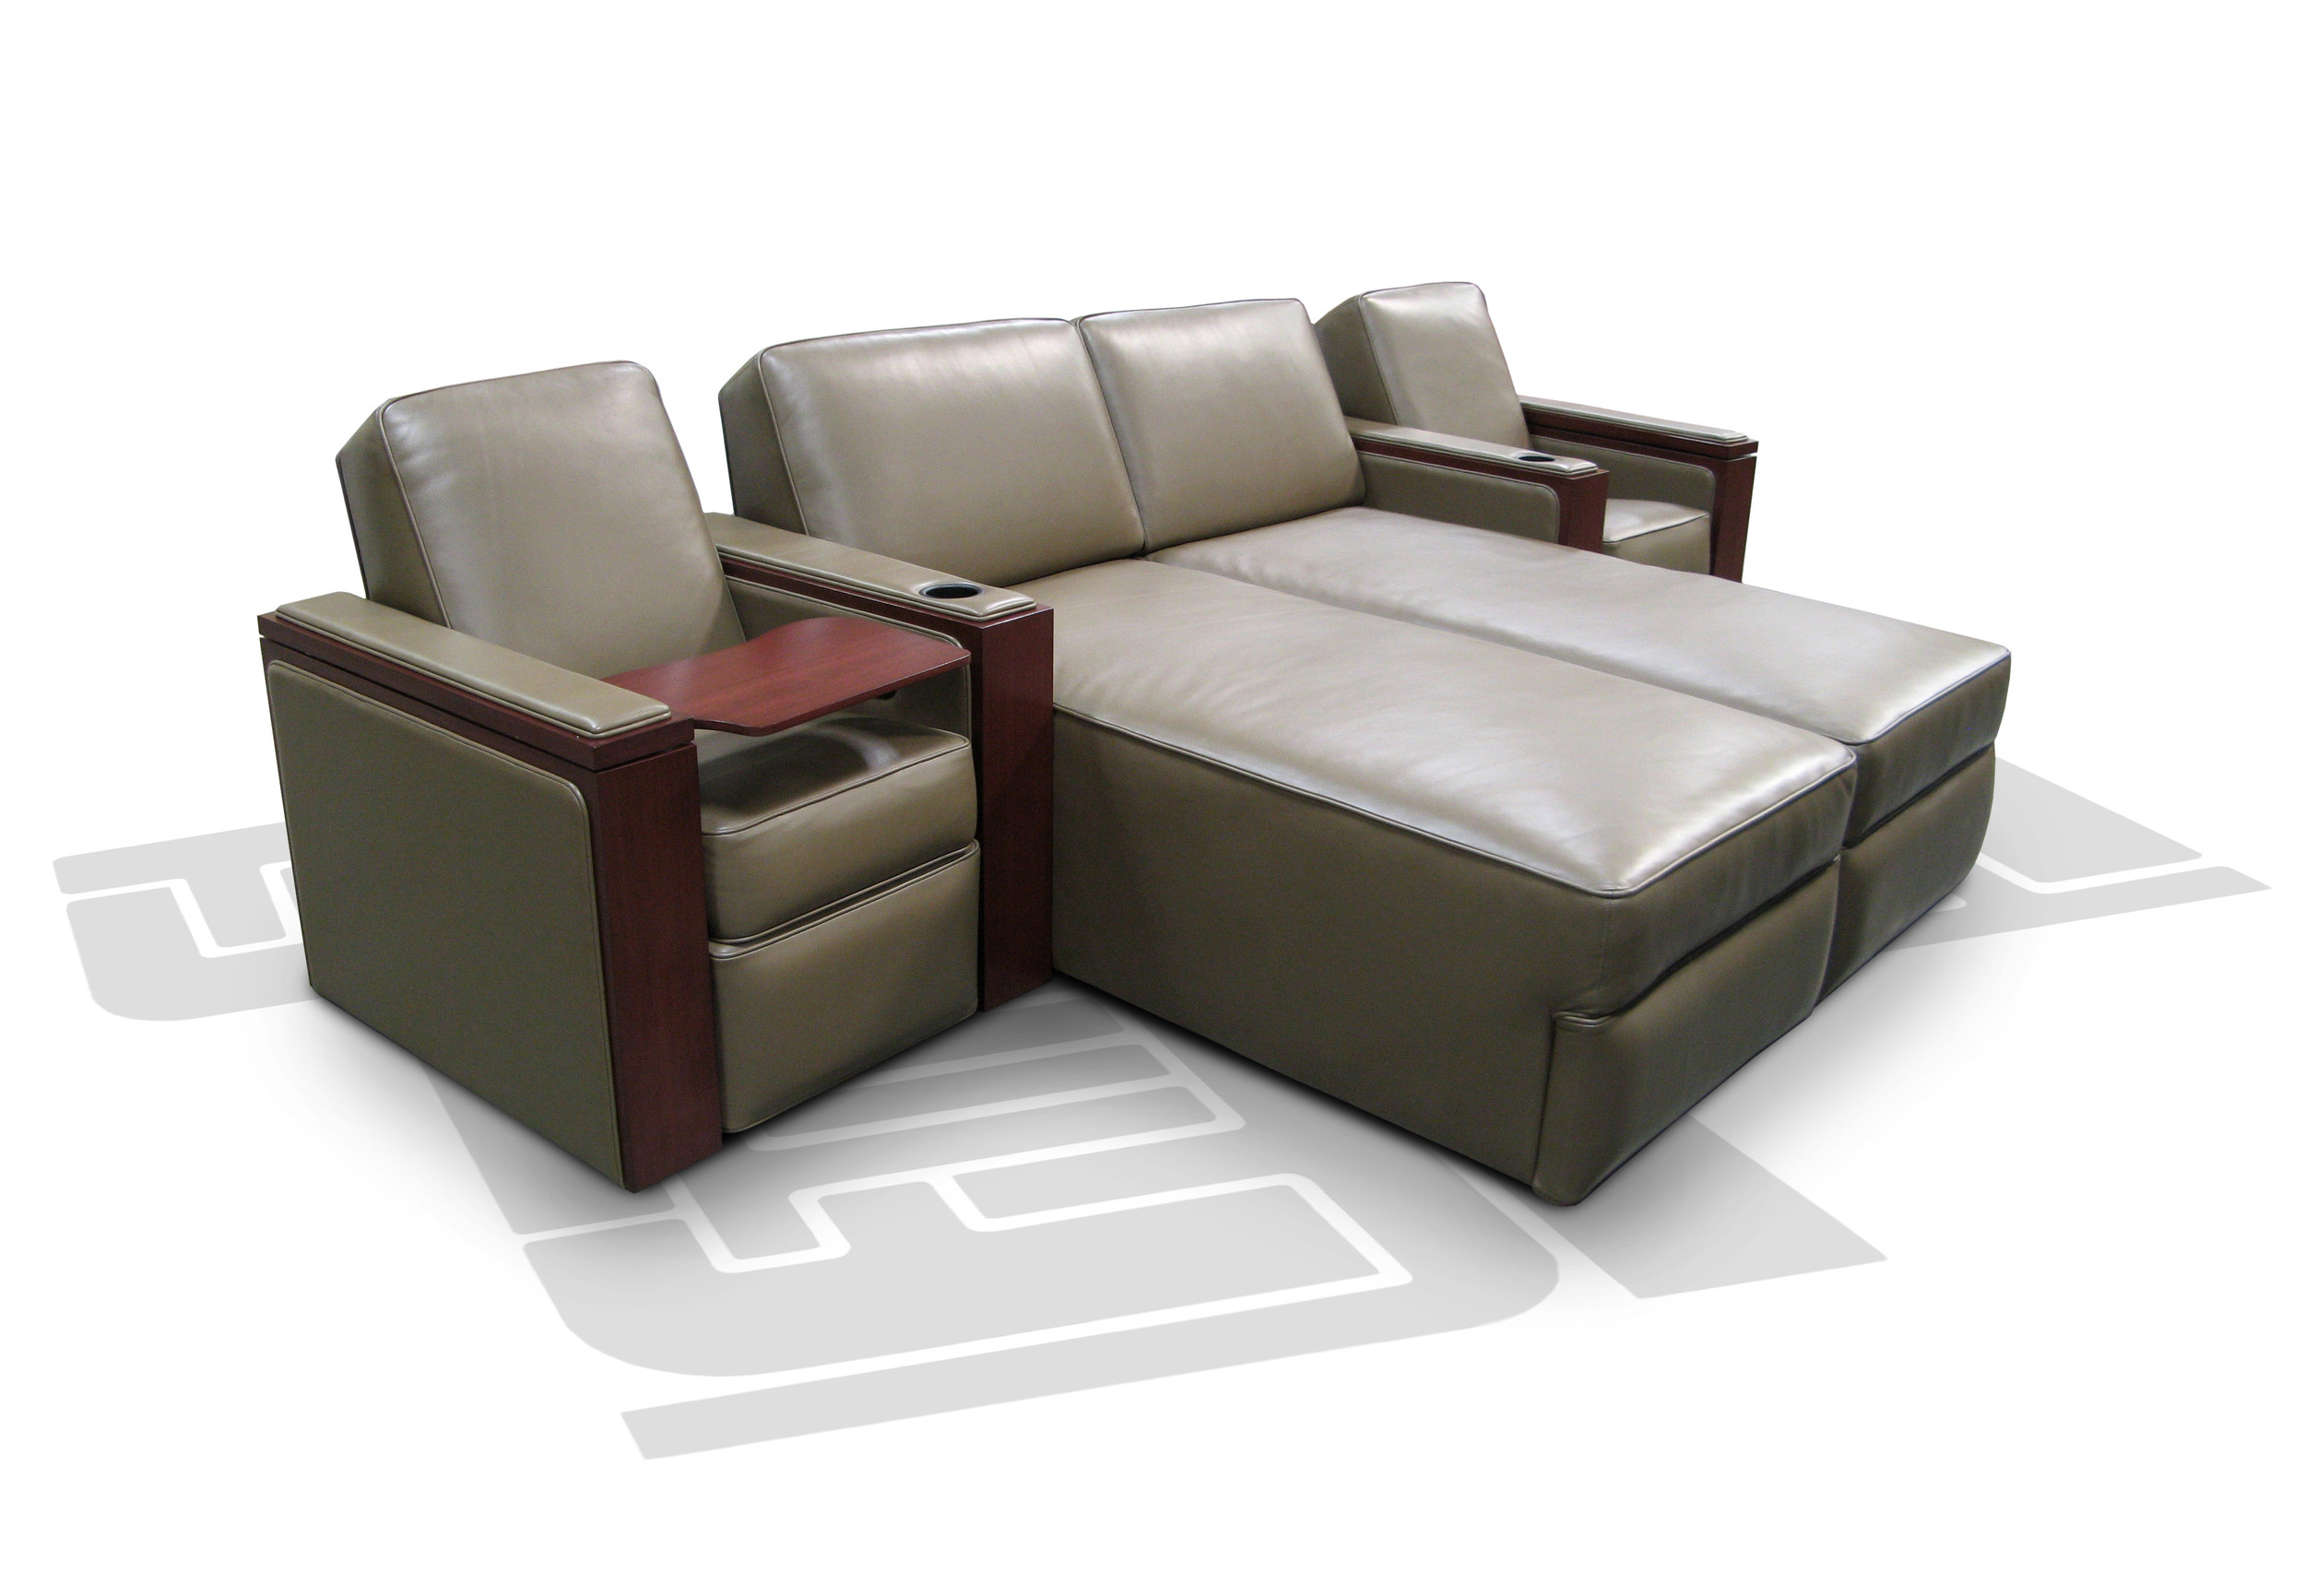 Single-Dual Chaise - Single; Motorized Tray Table; Concealed Cup Holder;